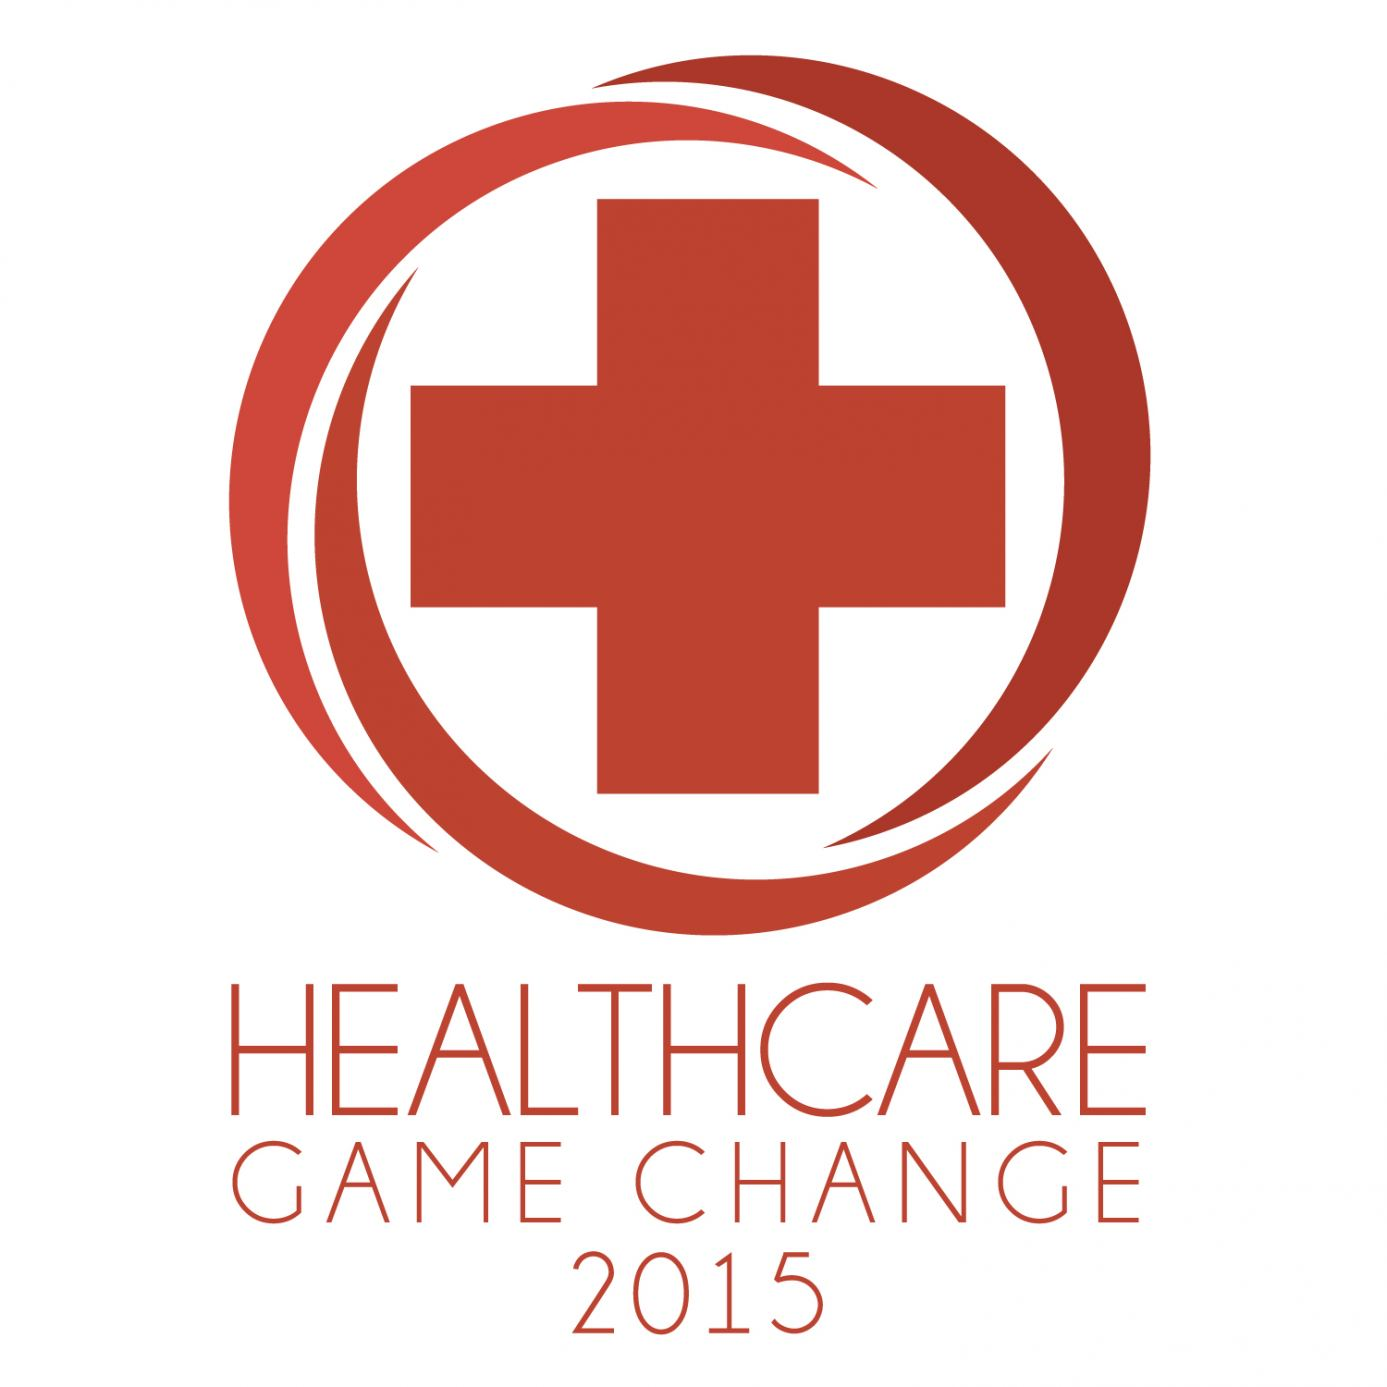 2015 Healthcare Game Change conference